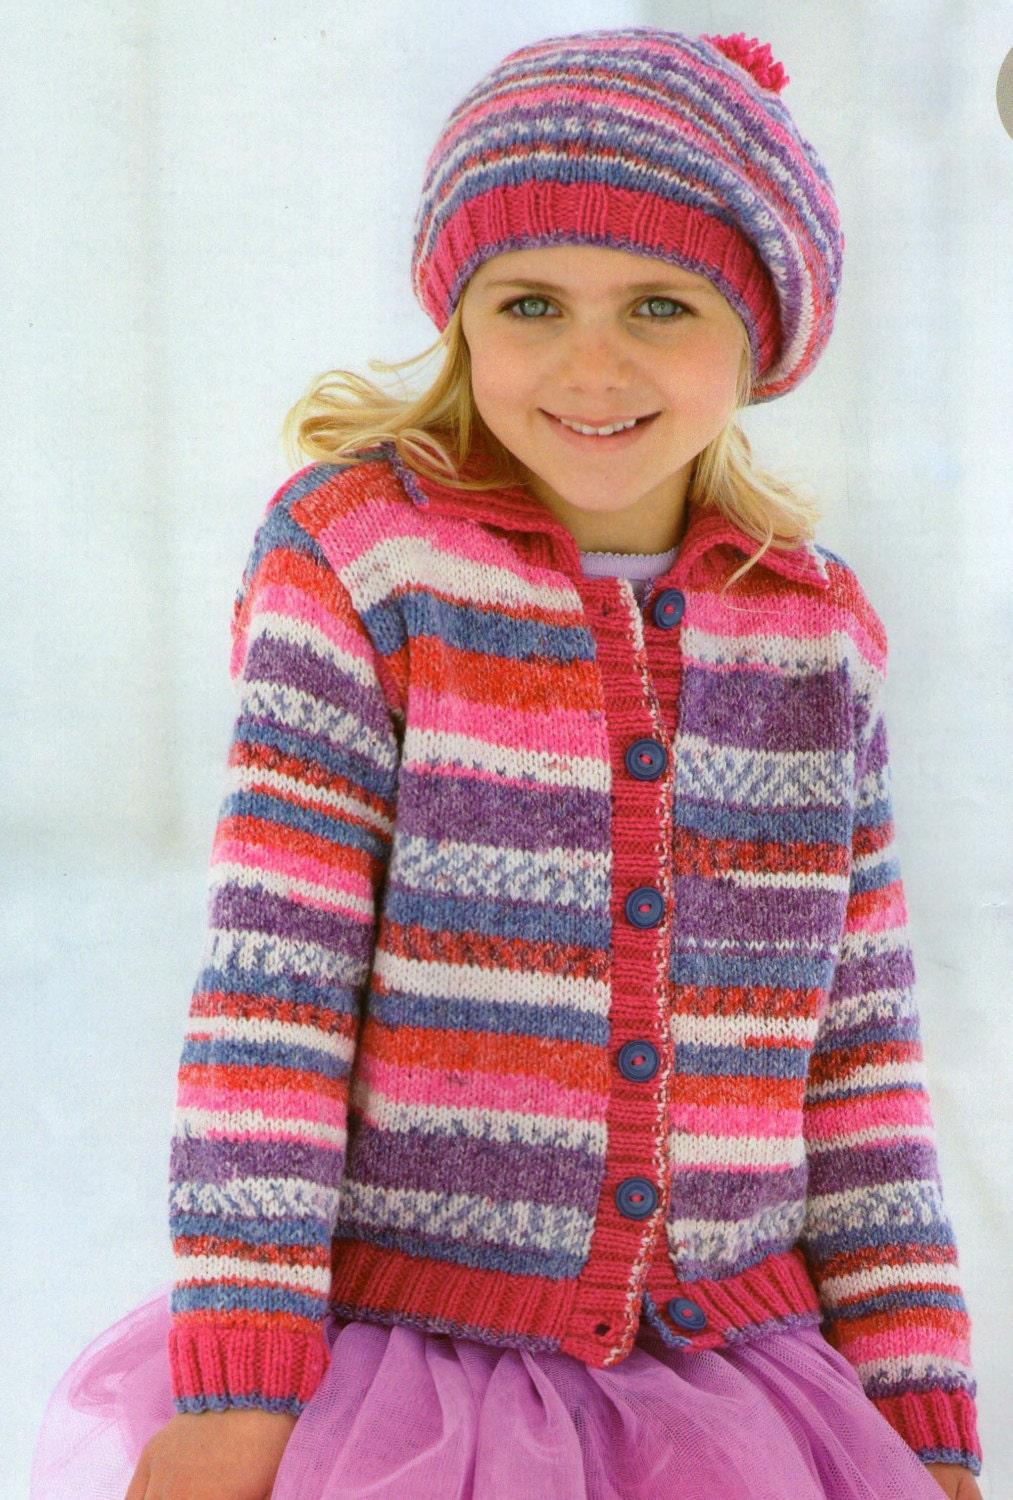 Knit Child Cardigan and Beret Vintage Knitting Pattern 2-13